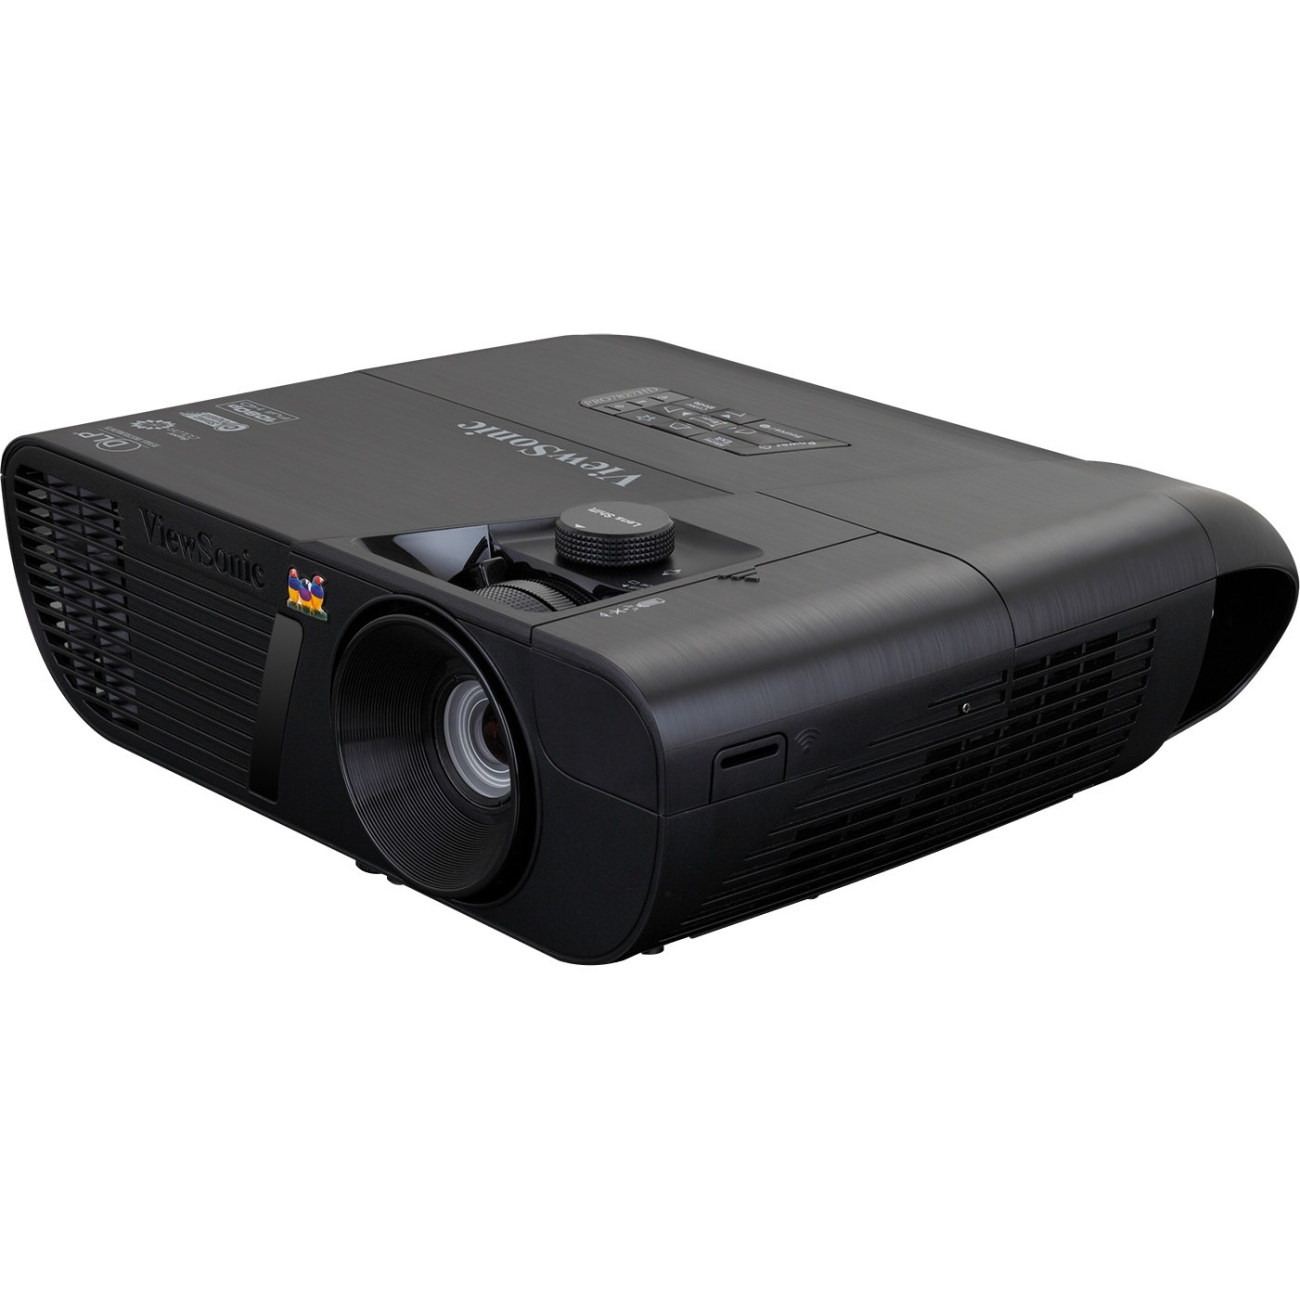 Viewsonic Lightstream Pro7827hd 3d Ready Dlp Projector - 1080p - Hdtv - 16:9 - Front - 3500 Hour Normal Mode - 6500 Hour Economy Mode - 1920 X 1080 - Full Hd - 22,000:1 - 2200 Lm - Hdmi - (pro7827hd)